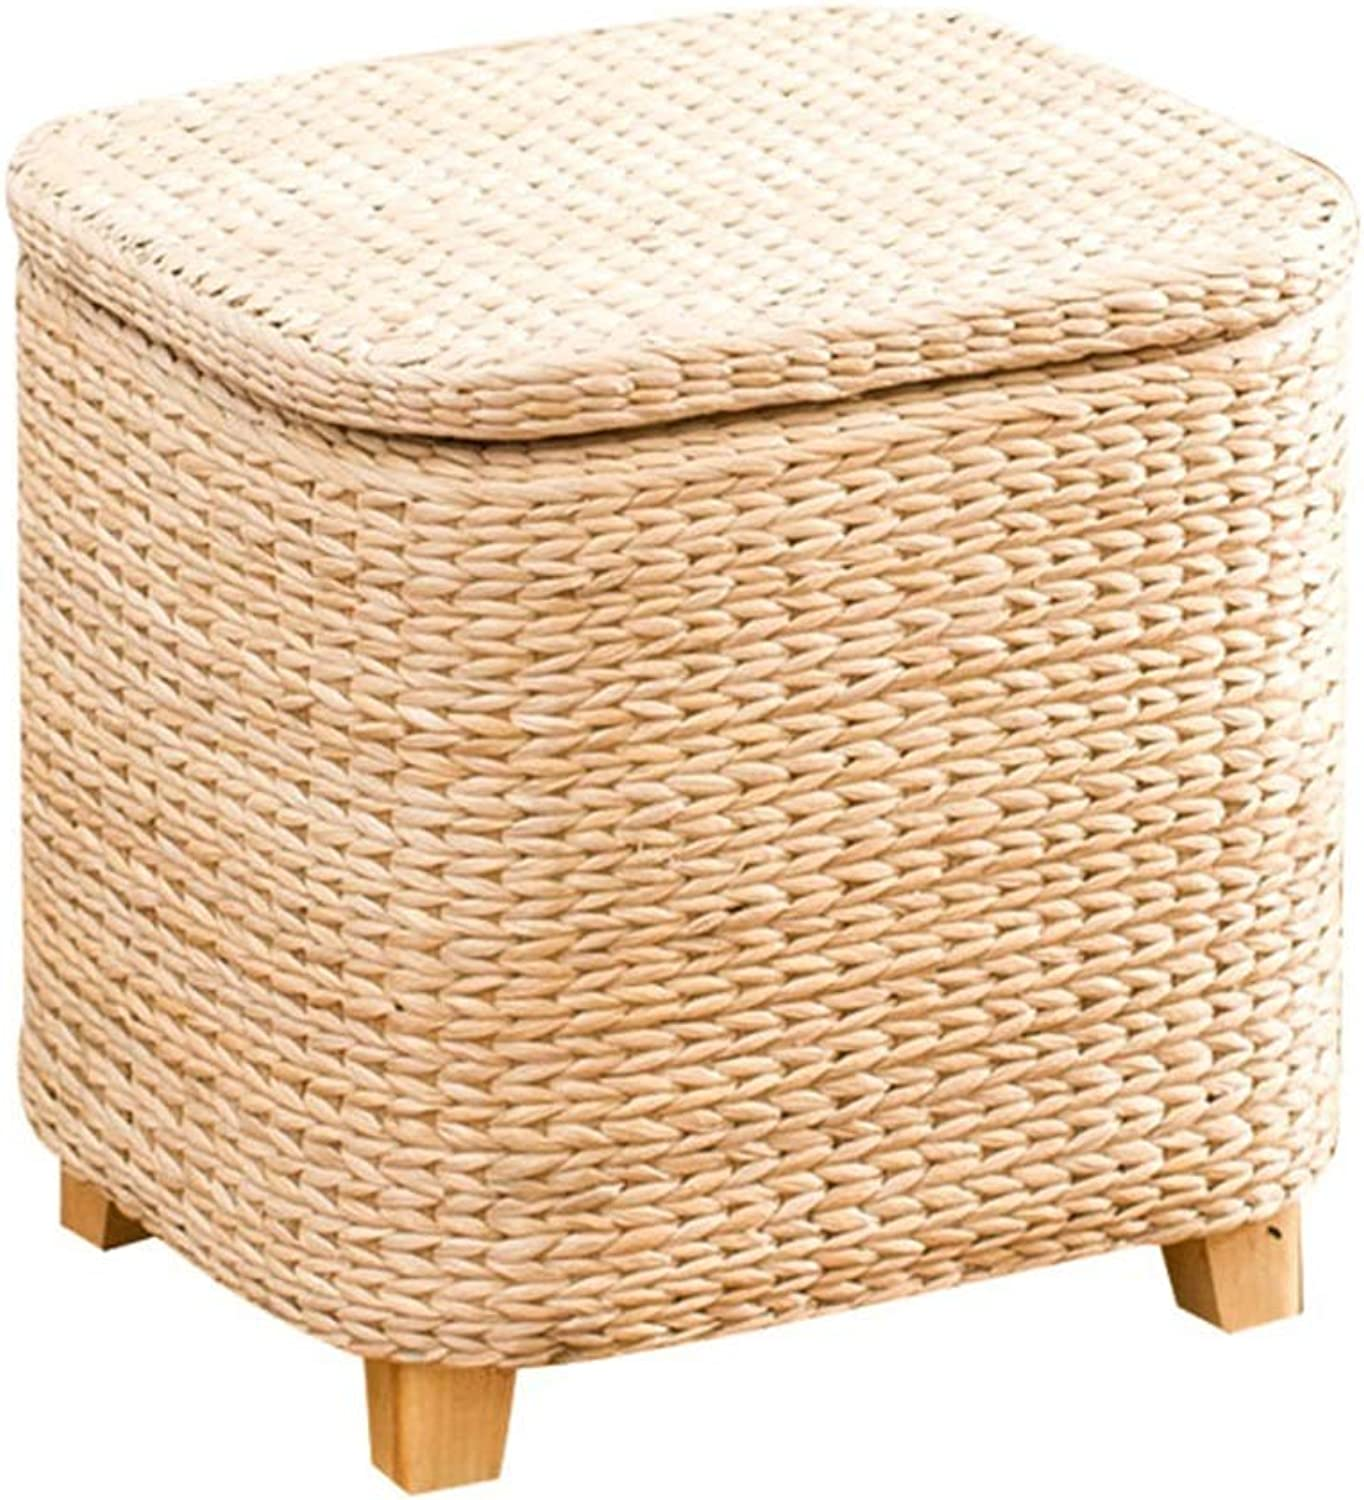 ZH STOOLS Sofa Stool, Solid Wood Rural Rattan Grass Art Storage Bench for Makeup Footrest Change shoes (color   A, Size   36  30  36cm)